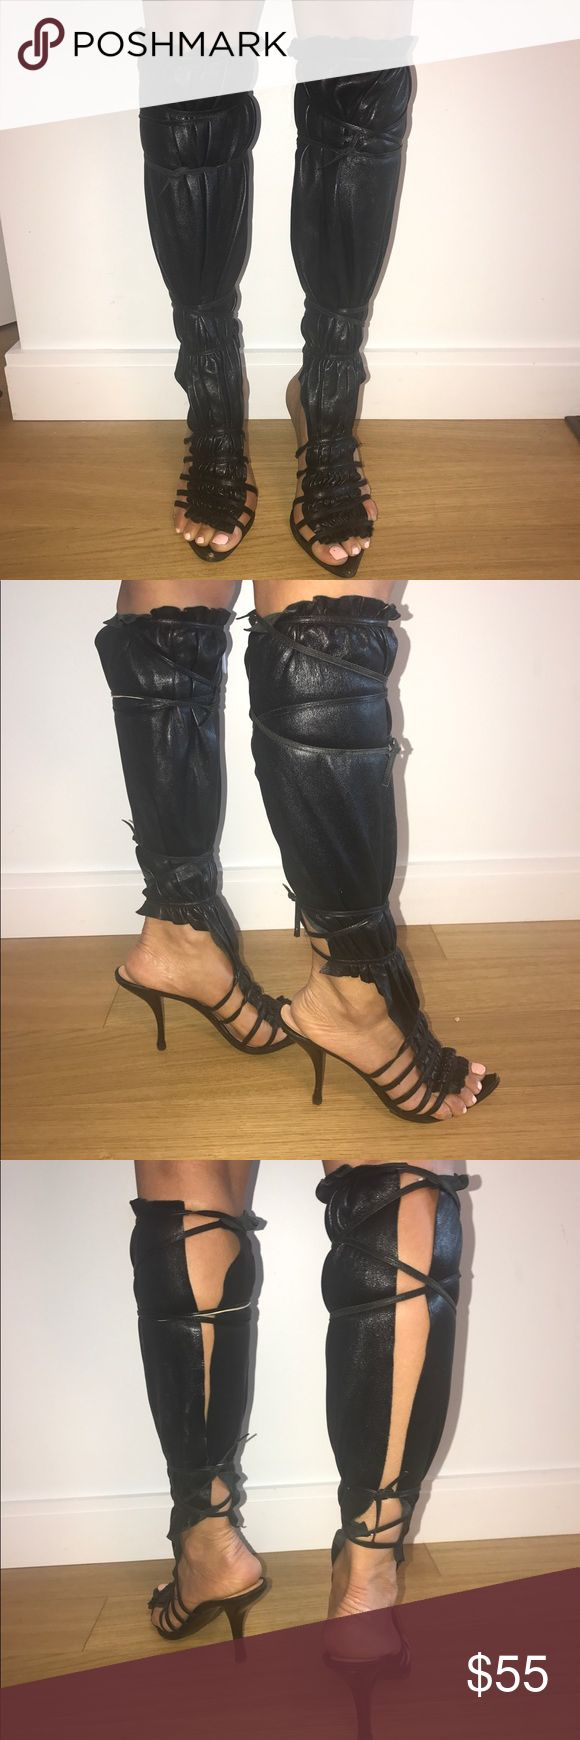 Summer leather knee high boots Gorgeous 100% leather summer boots. Super sexy and very comfortable. Some signs of wear include scratches on the heels- can be easily covered, scratches on the front. The brand name wears off, see the last photo. But still have tons of life and super hot 🔥 Les Tropeziennes Shoes